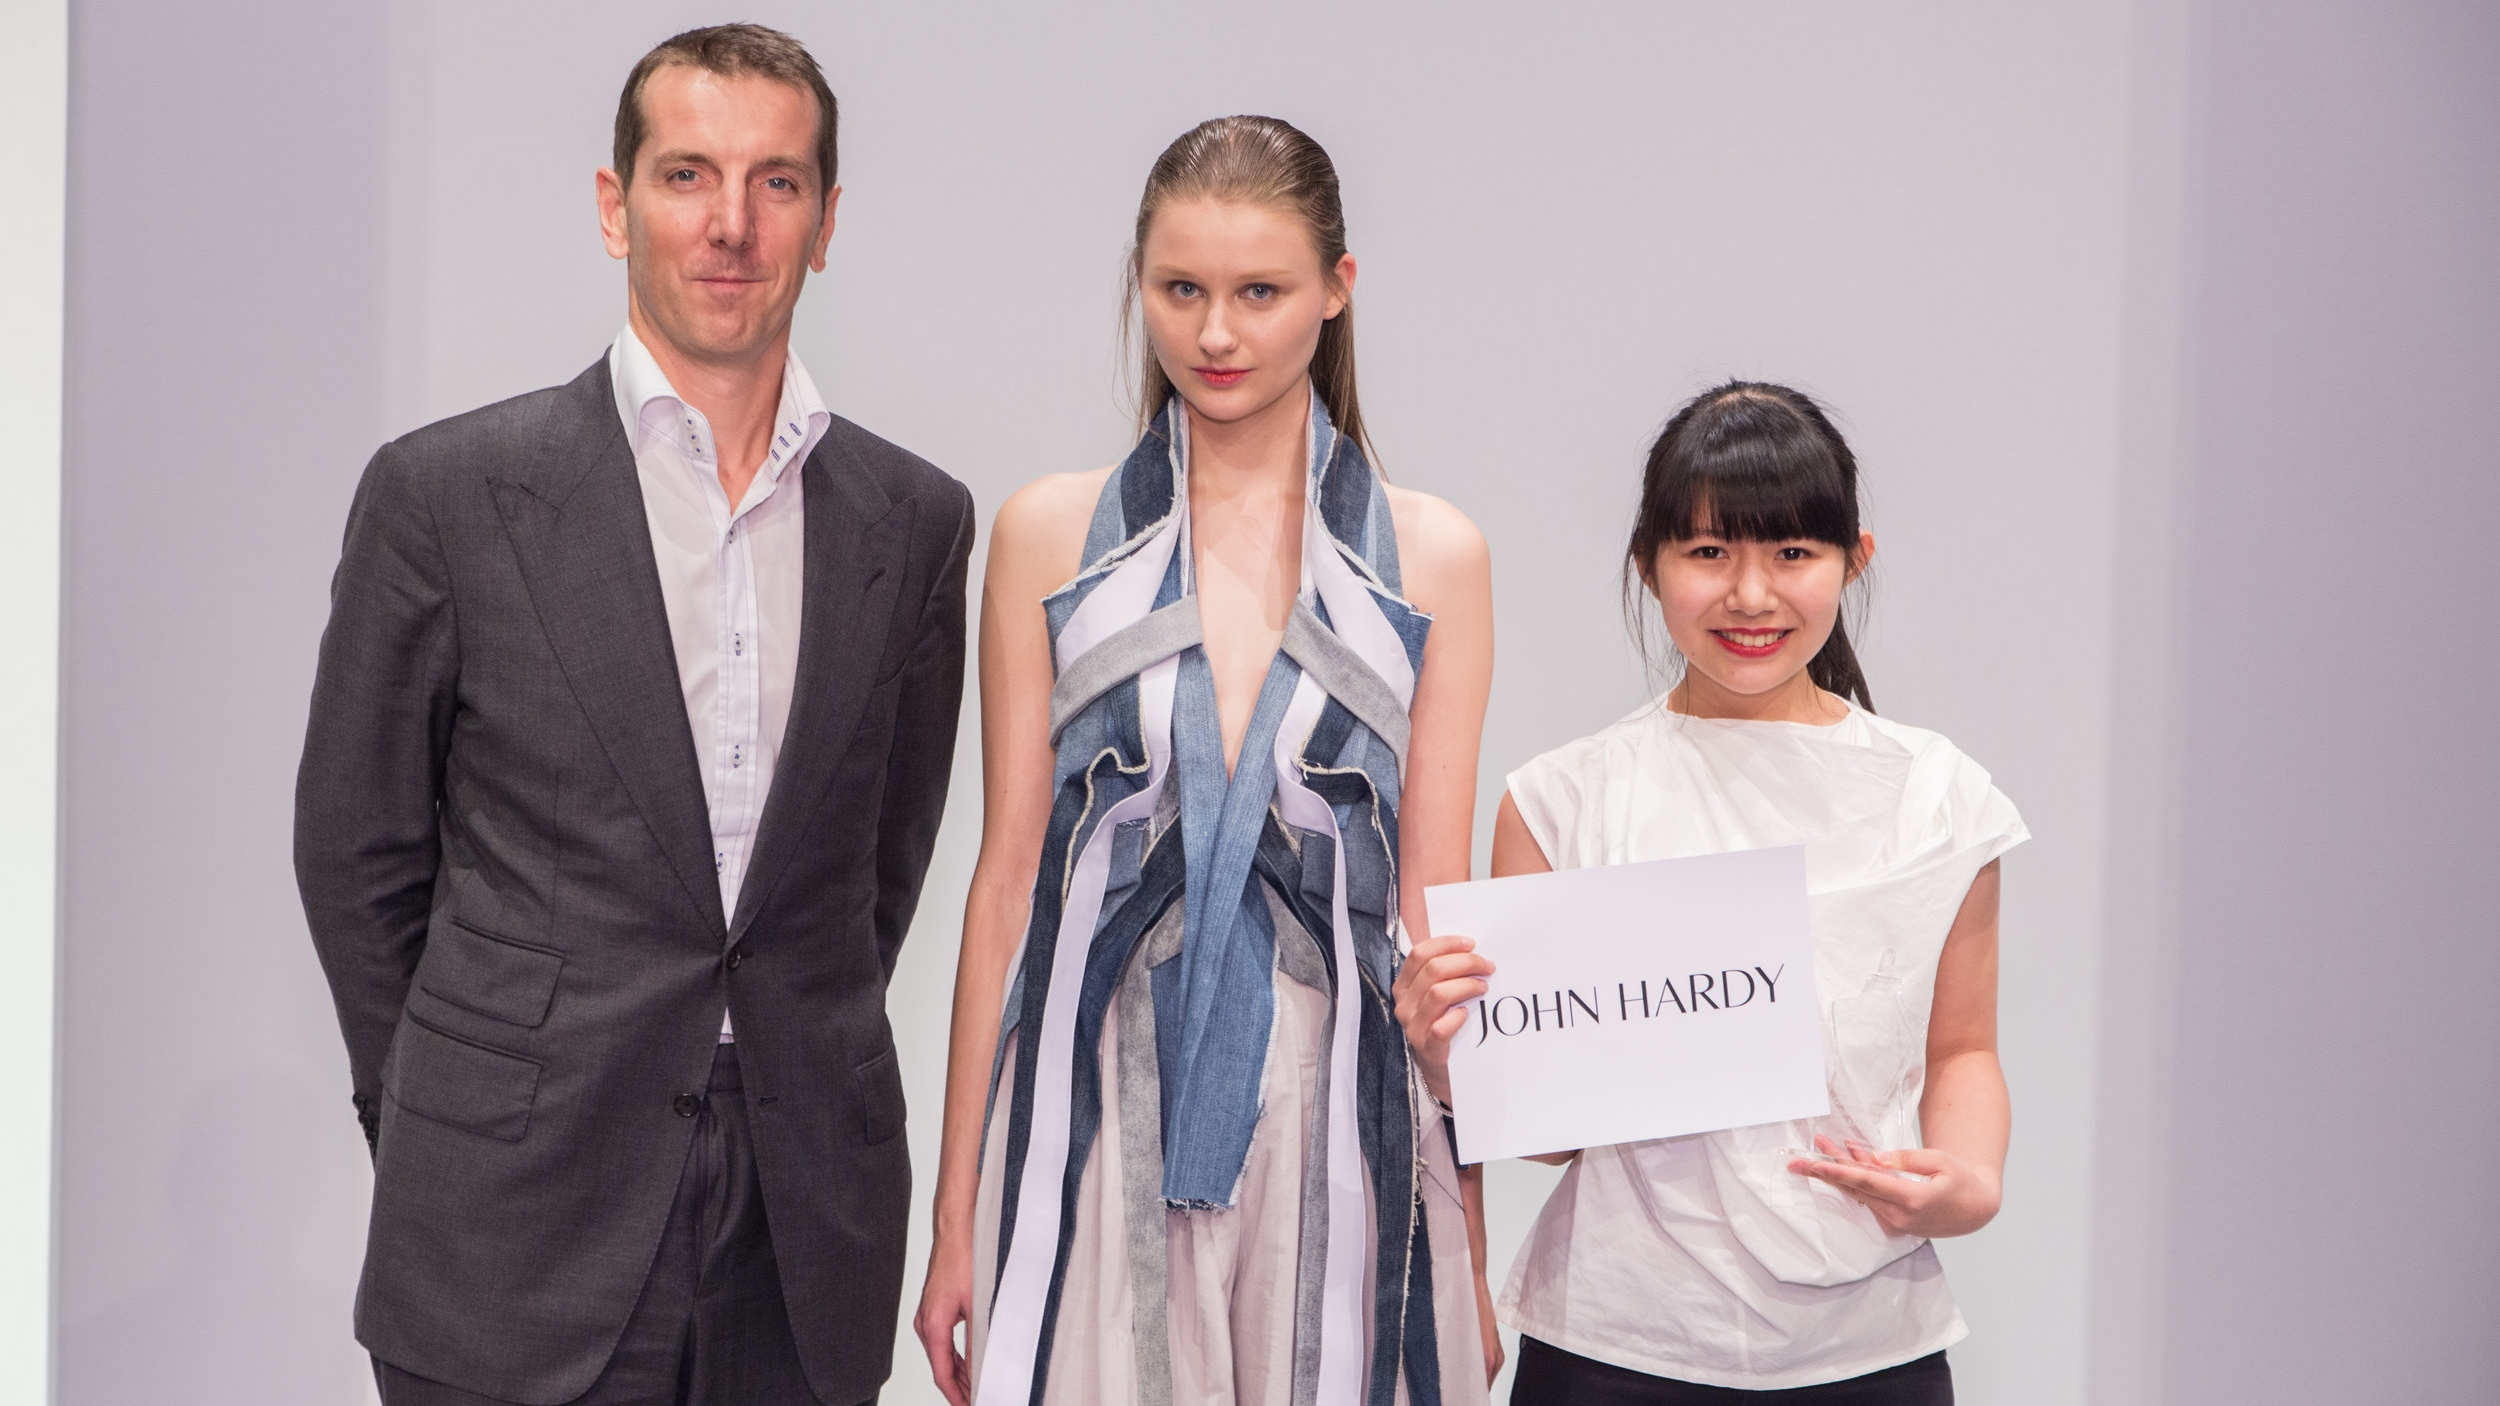 Laurensia Salim won the Special Prize: Redress Design Award 2014/15 with John Hardy